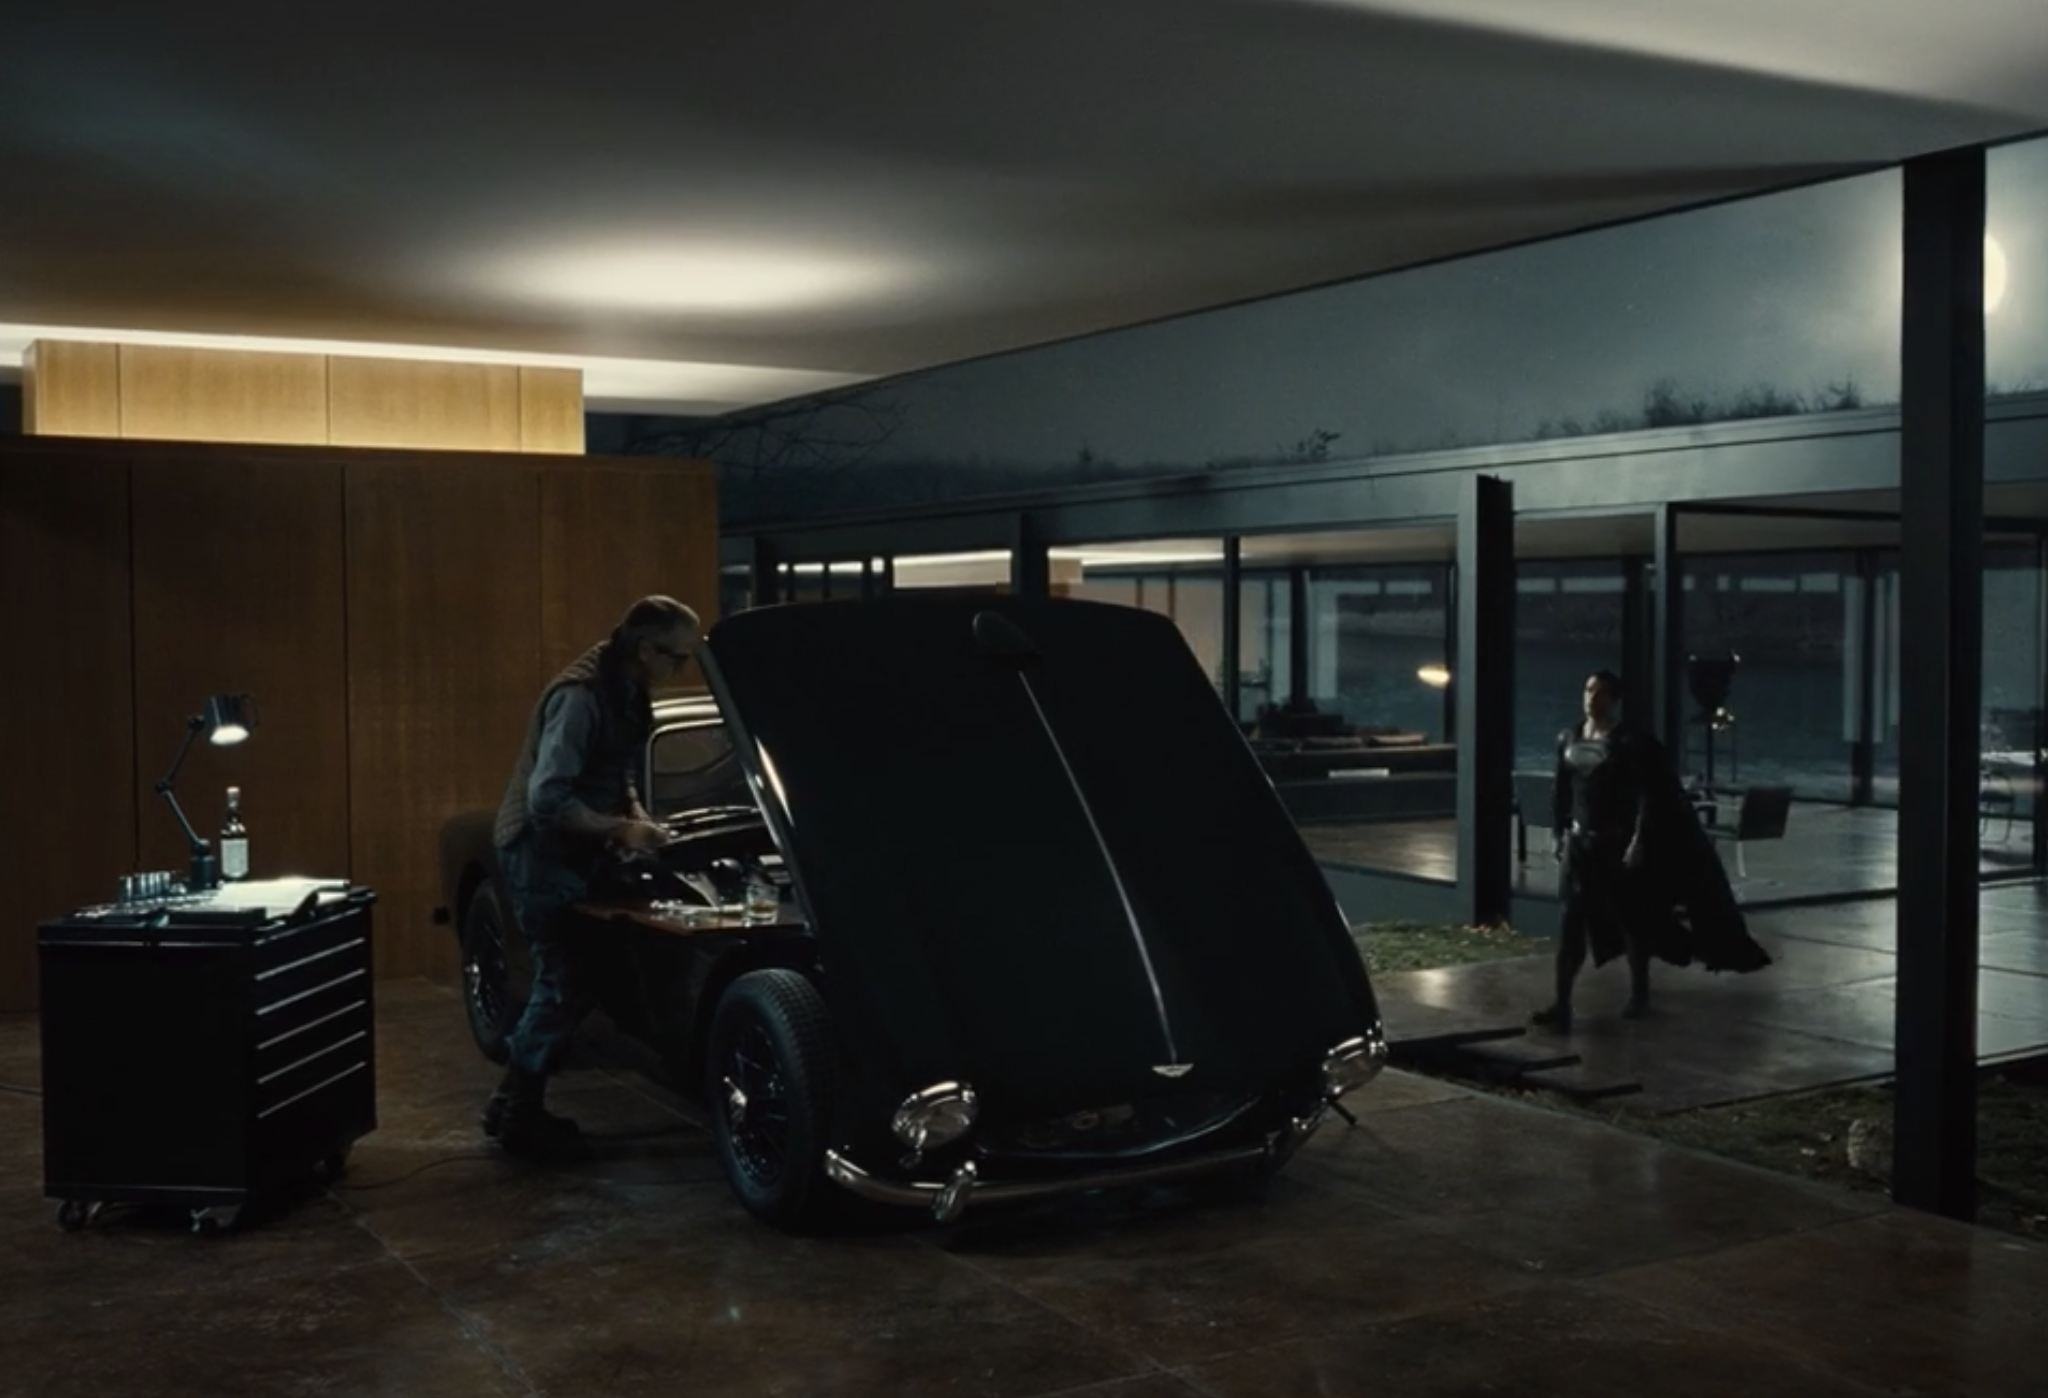 Alfred working on a car as Superman walks up